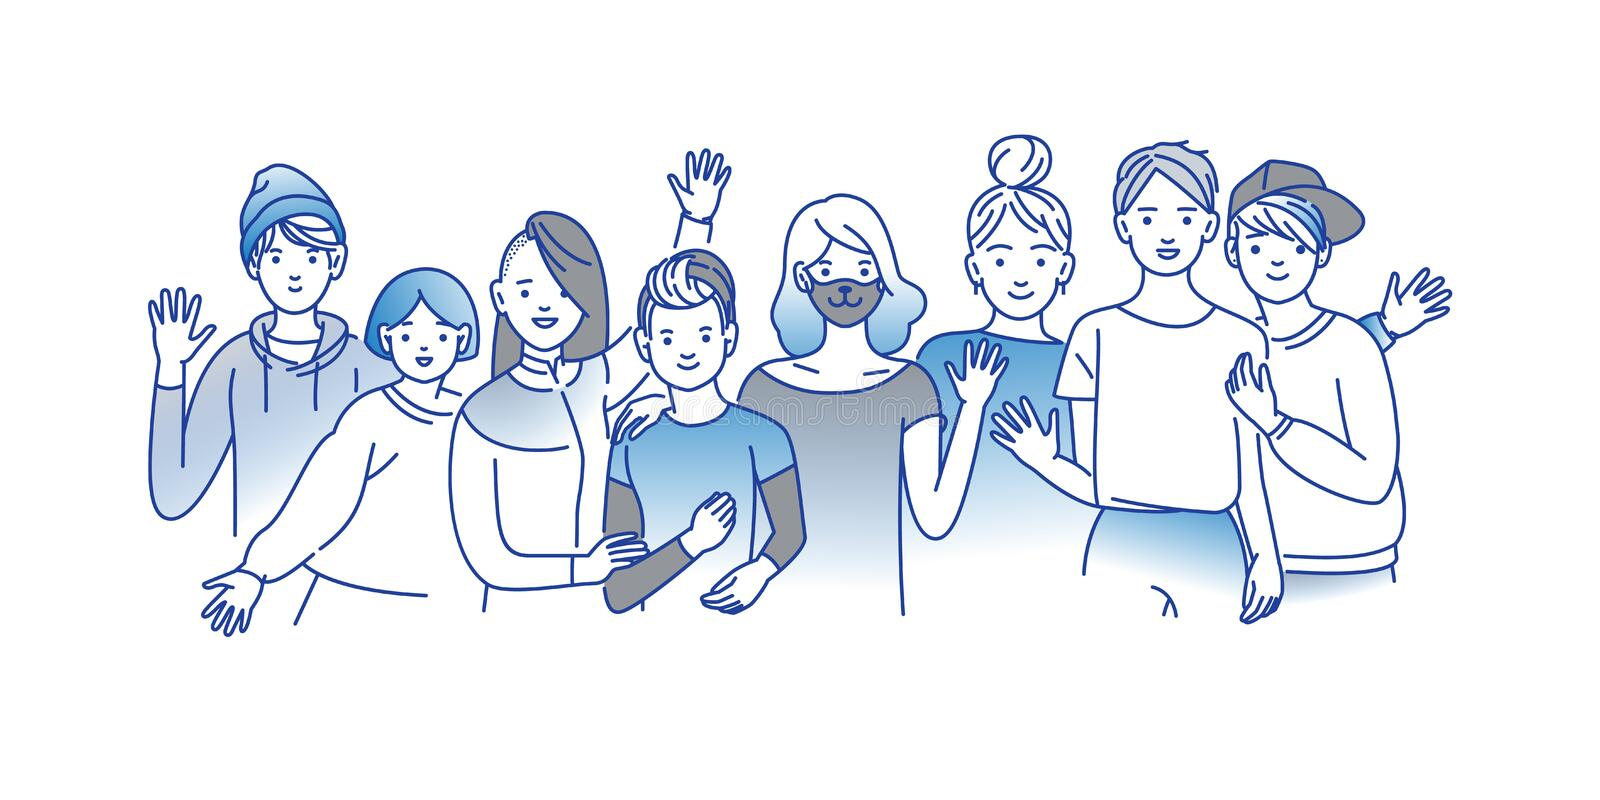 Group of smiling teenage boys and girls standing together, embracing each other, waving hands. Happy students isolated royalty free illustration